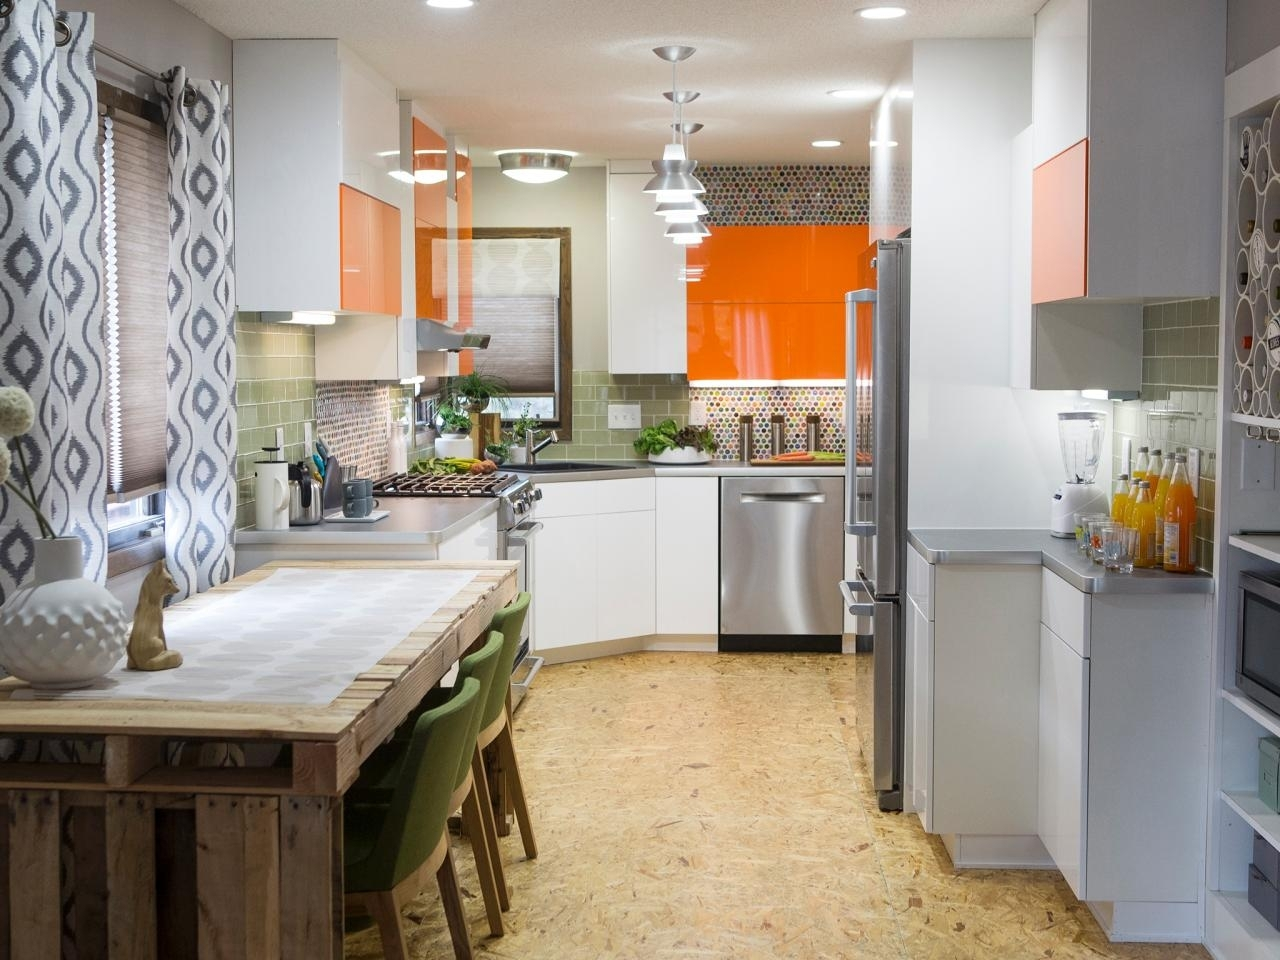 10 Attractive Kitchen Ideas On A Budget %name 2020